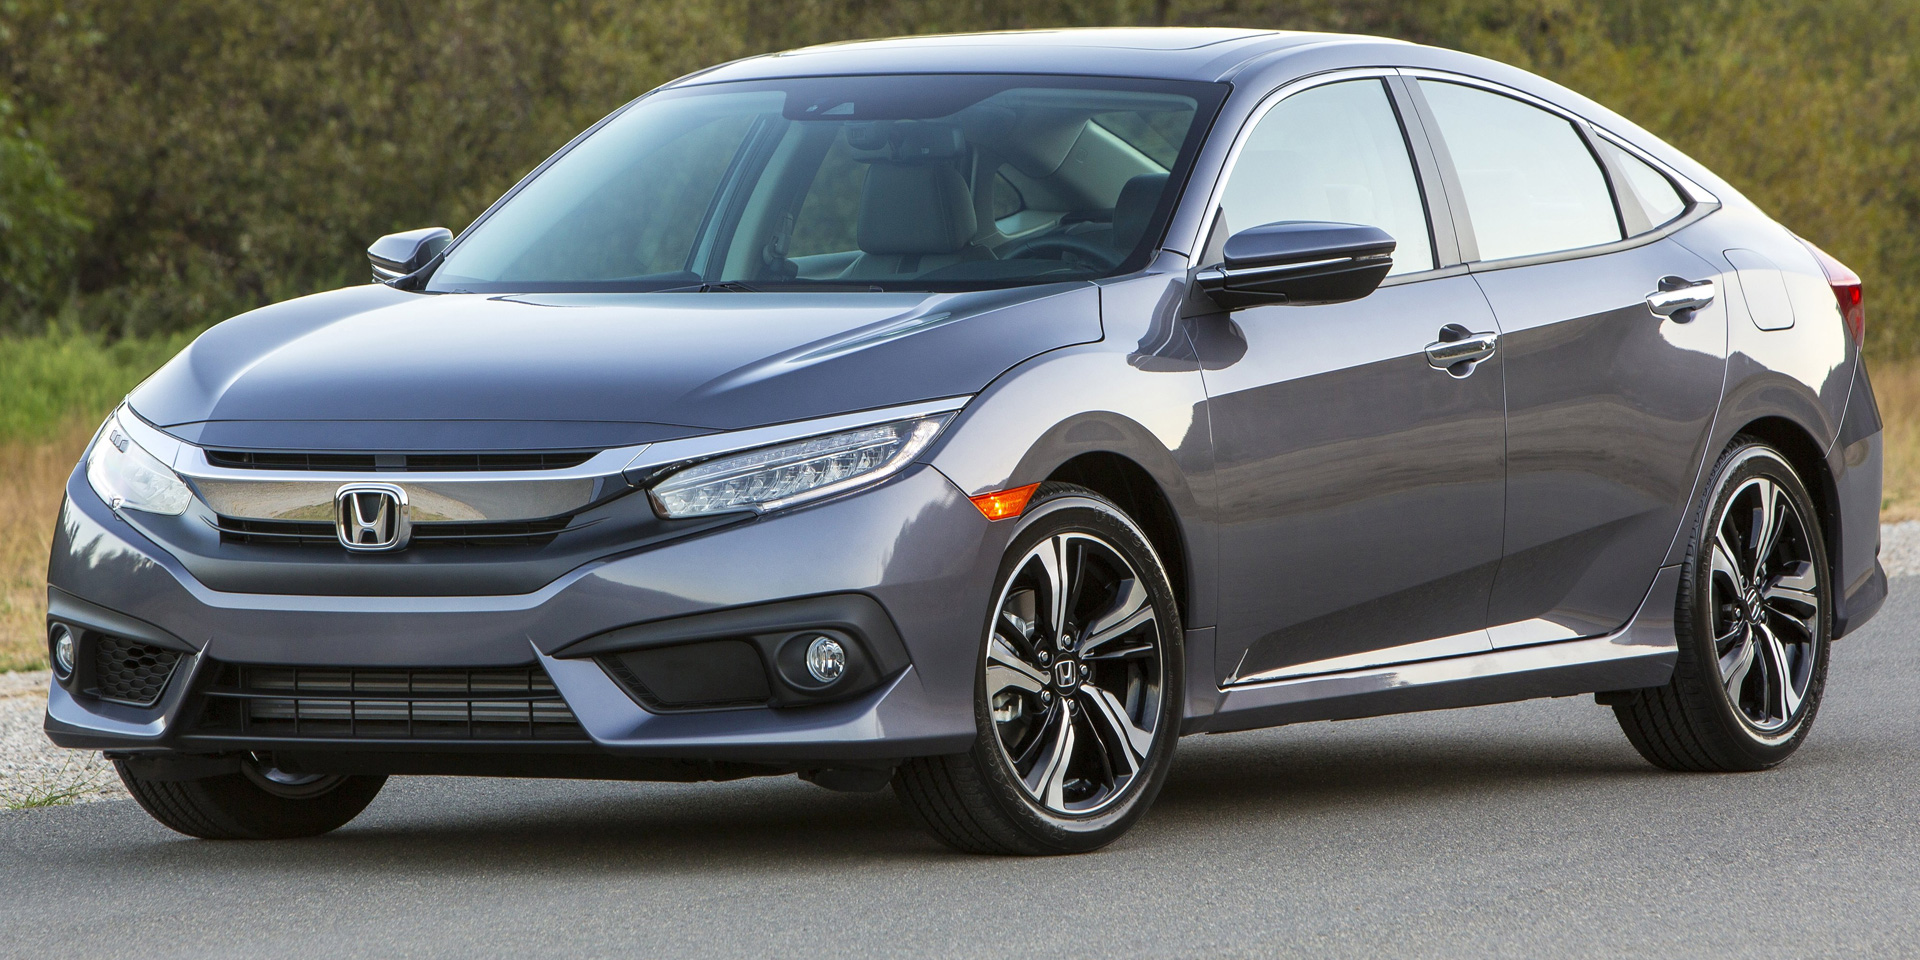 2018 honda civic vehicles on display chicago auto show for Honda civic rx